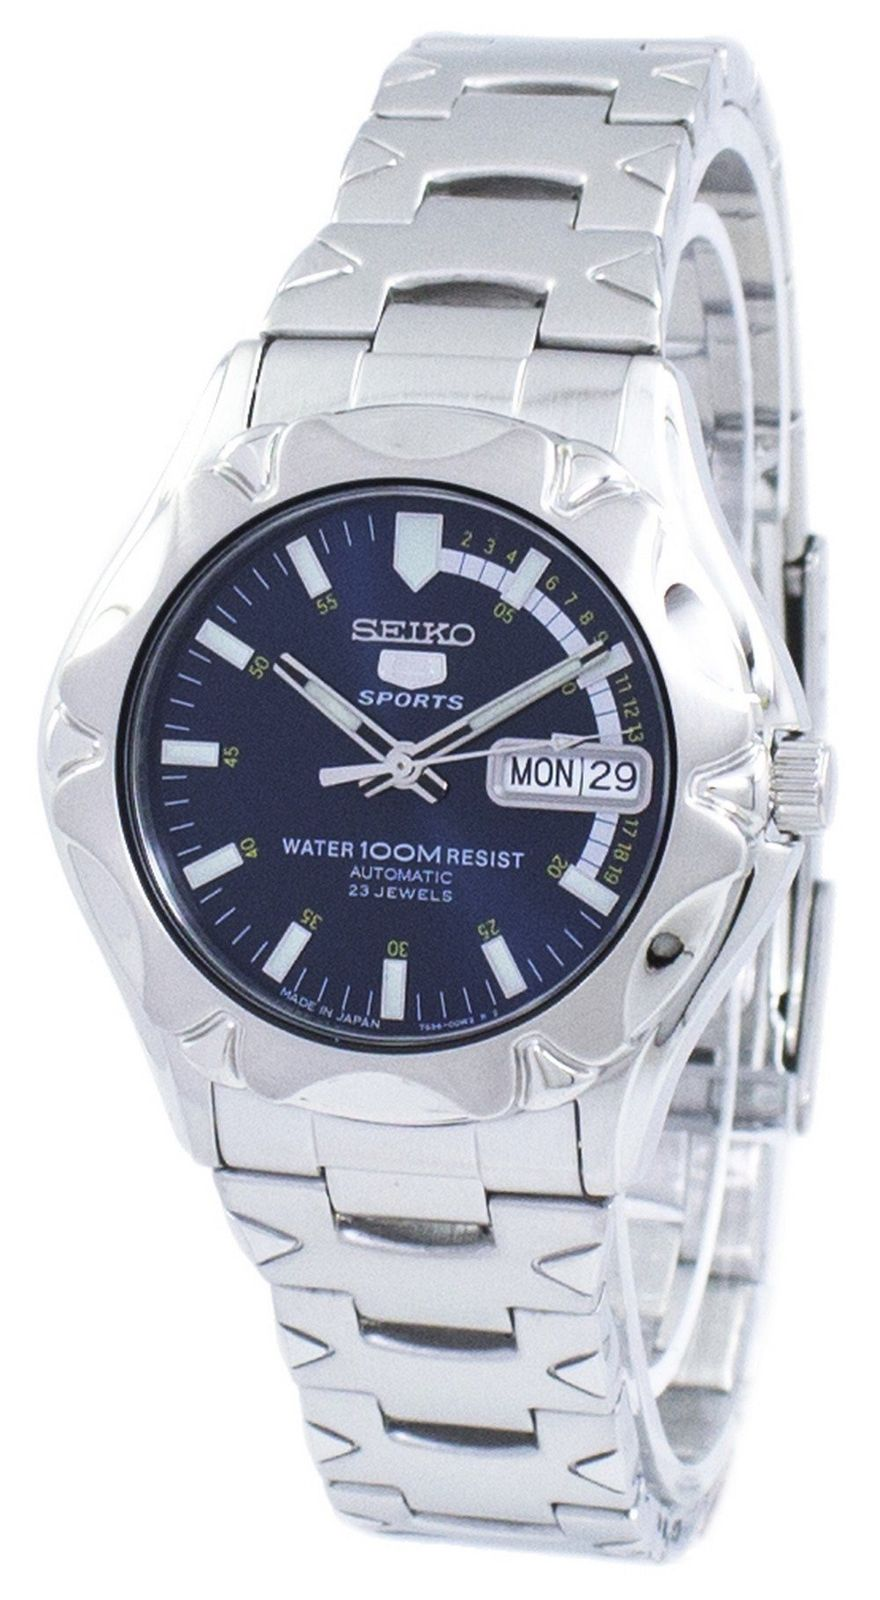 นาฬิกาผู้ชาย Seiko รุ่น SNZ447J1, Seiko 5 Sports Automatic Japan Made Men's Watch